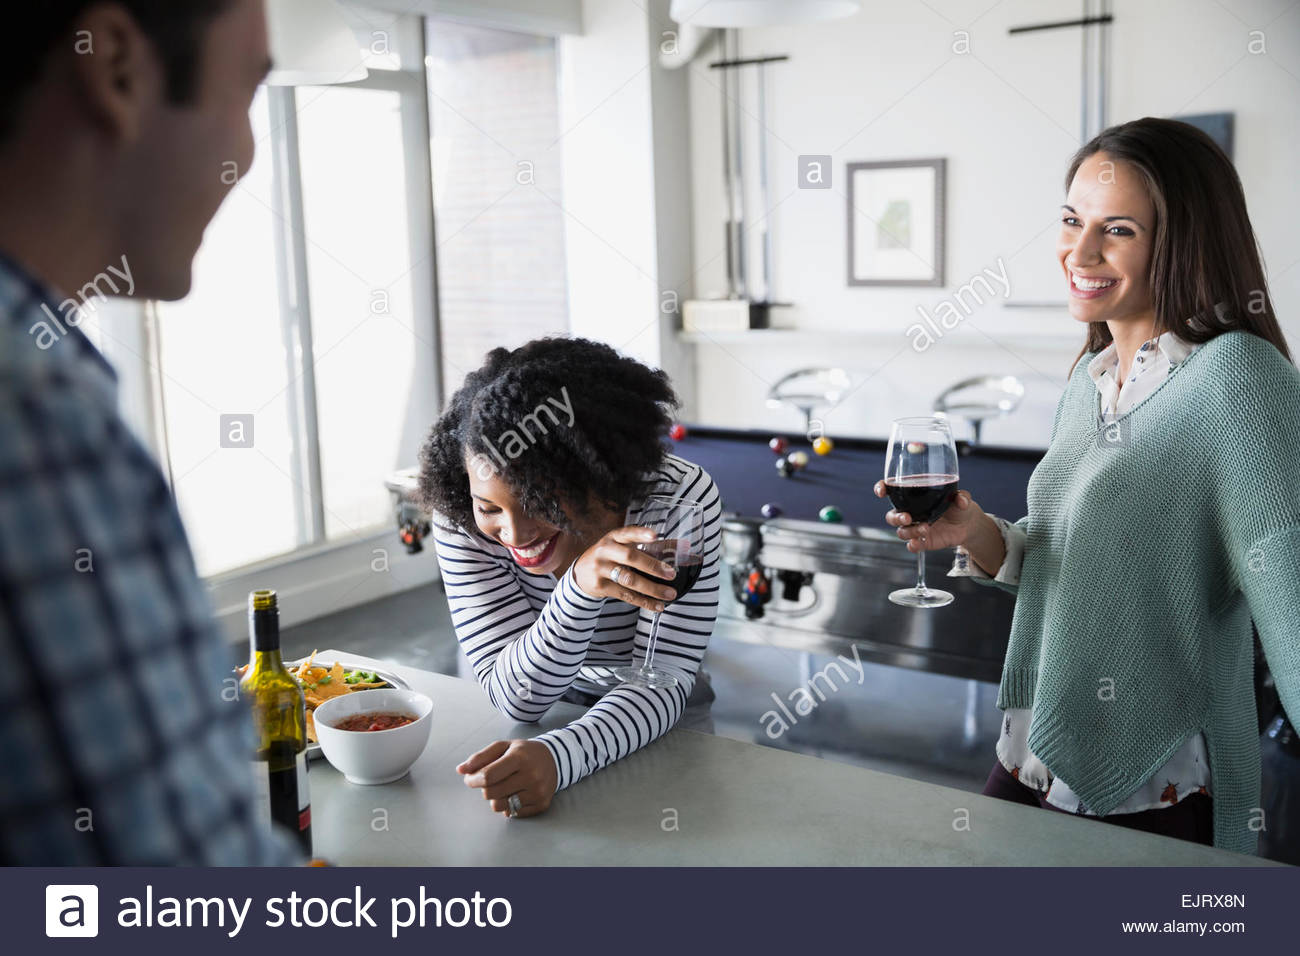 Friends laughing and drinking red wine in kitchen - Stock Image